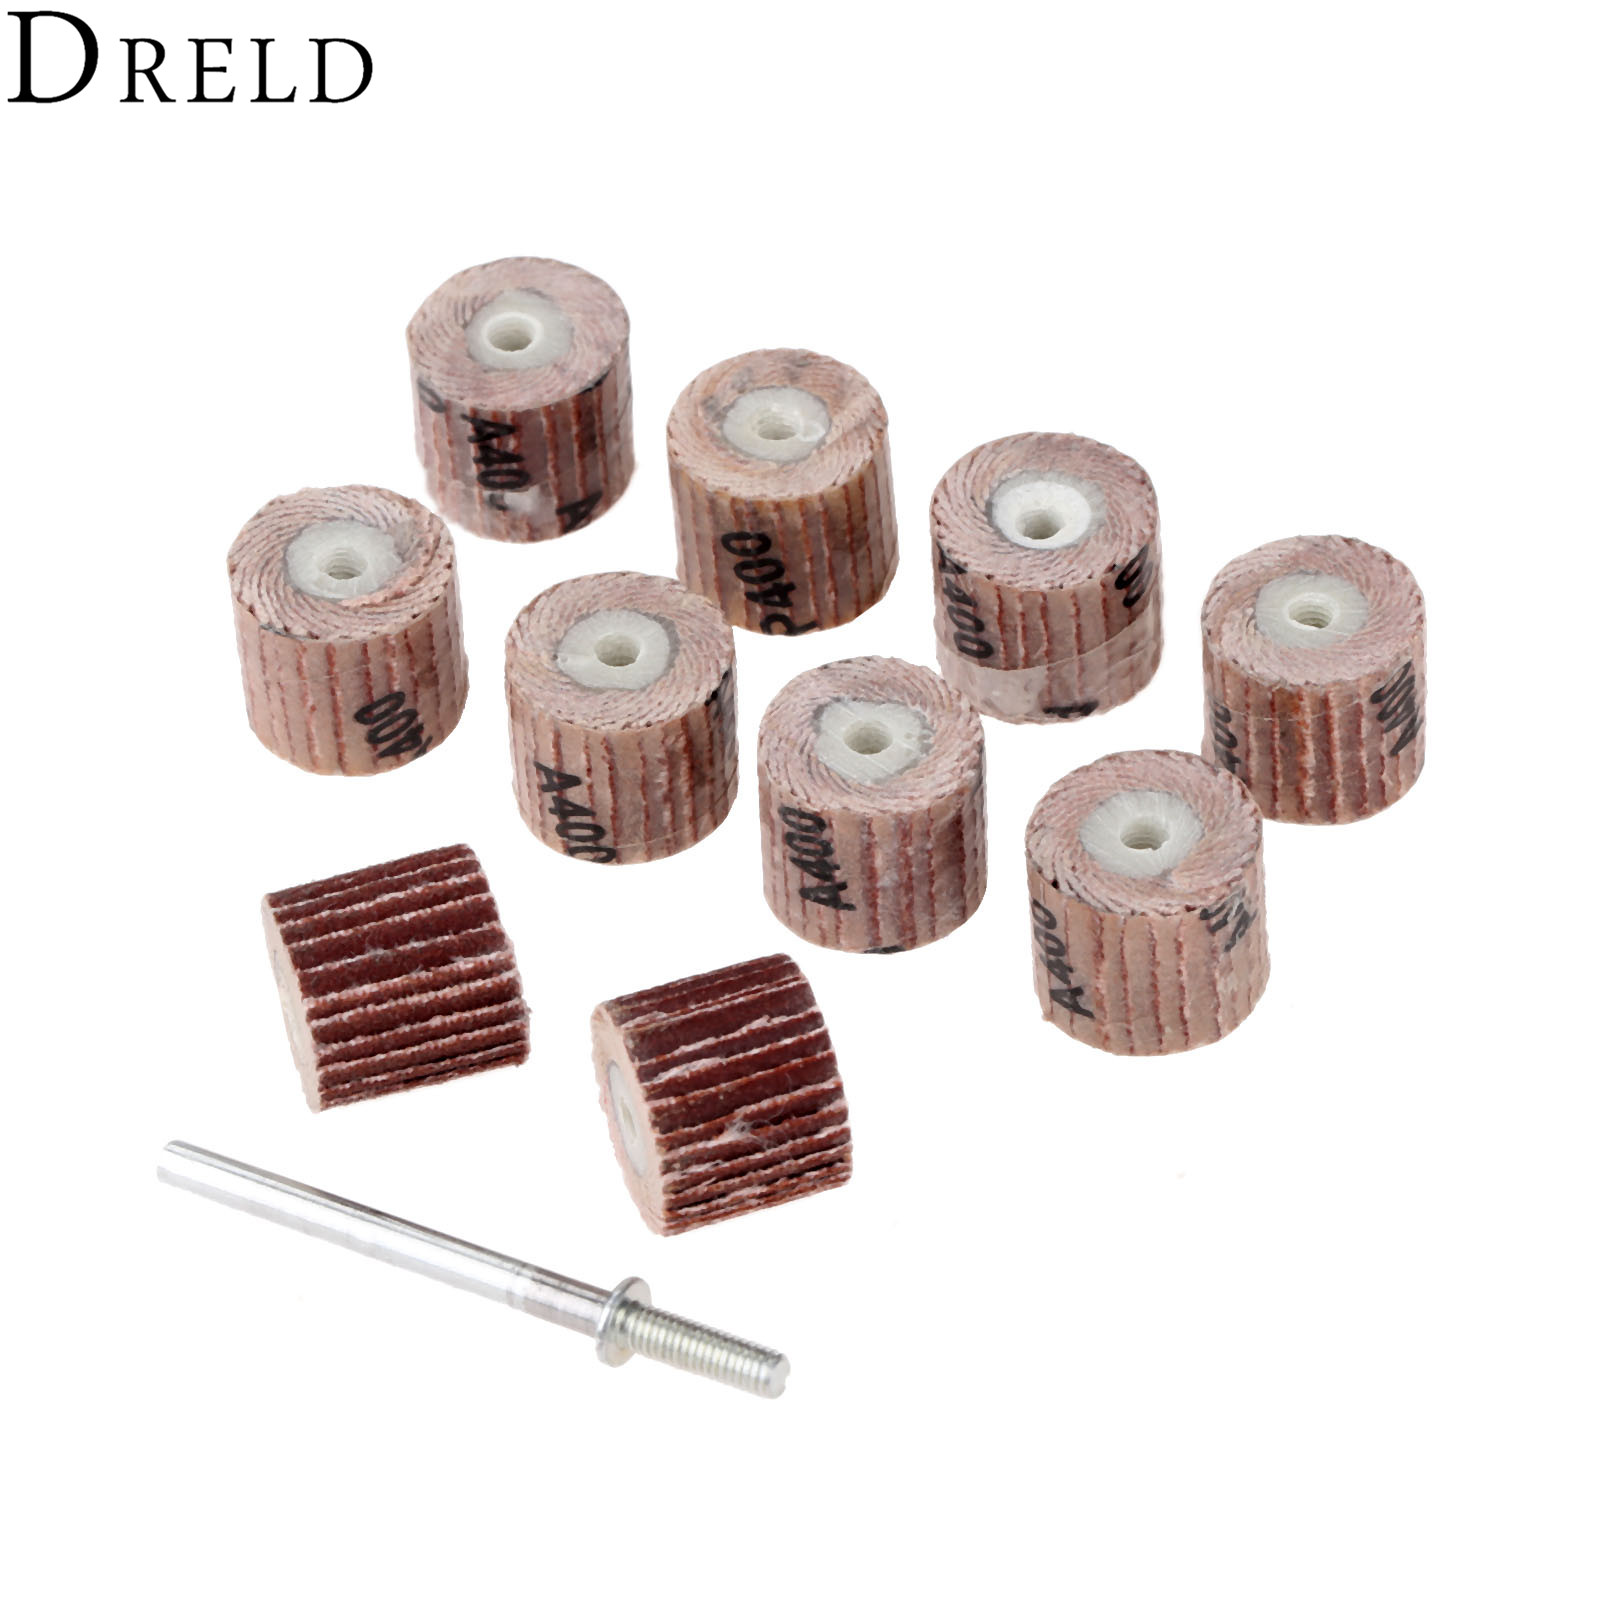 1pc Mandrel 10pcs Flap Wheel Brushes Emery Cloth Abrasive Sandpaper Grinding Compatible for Woodworking Disc 20mm 600#